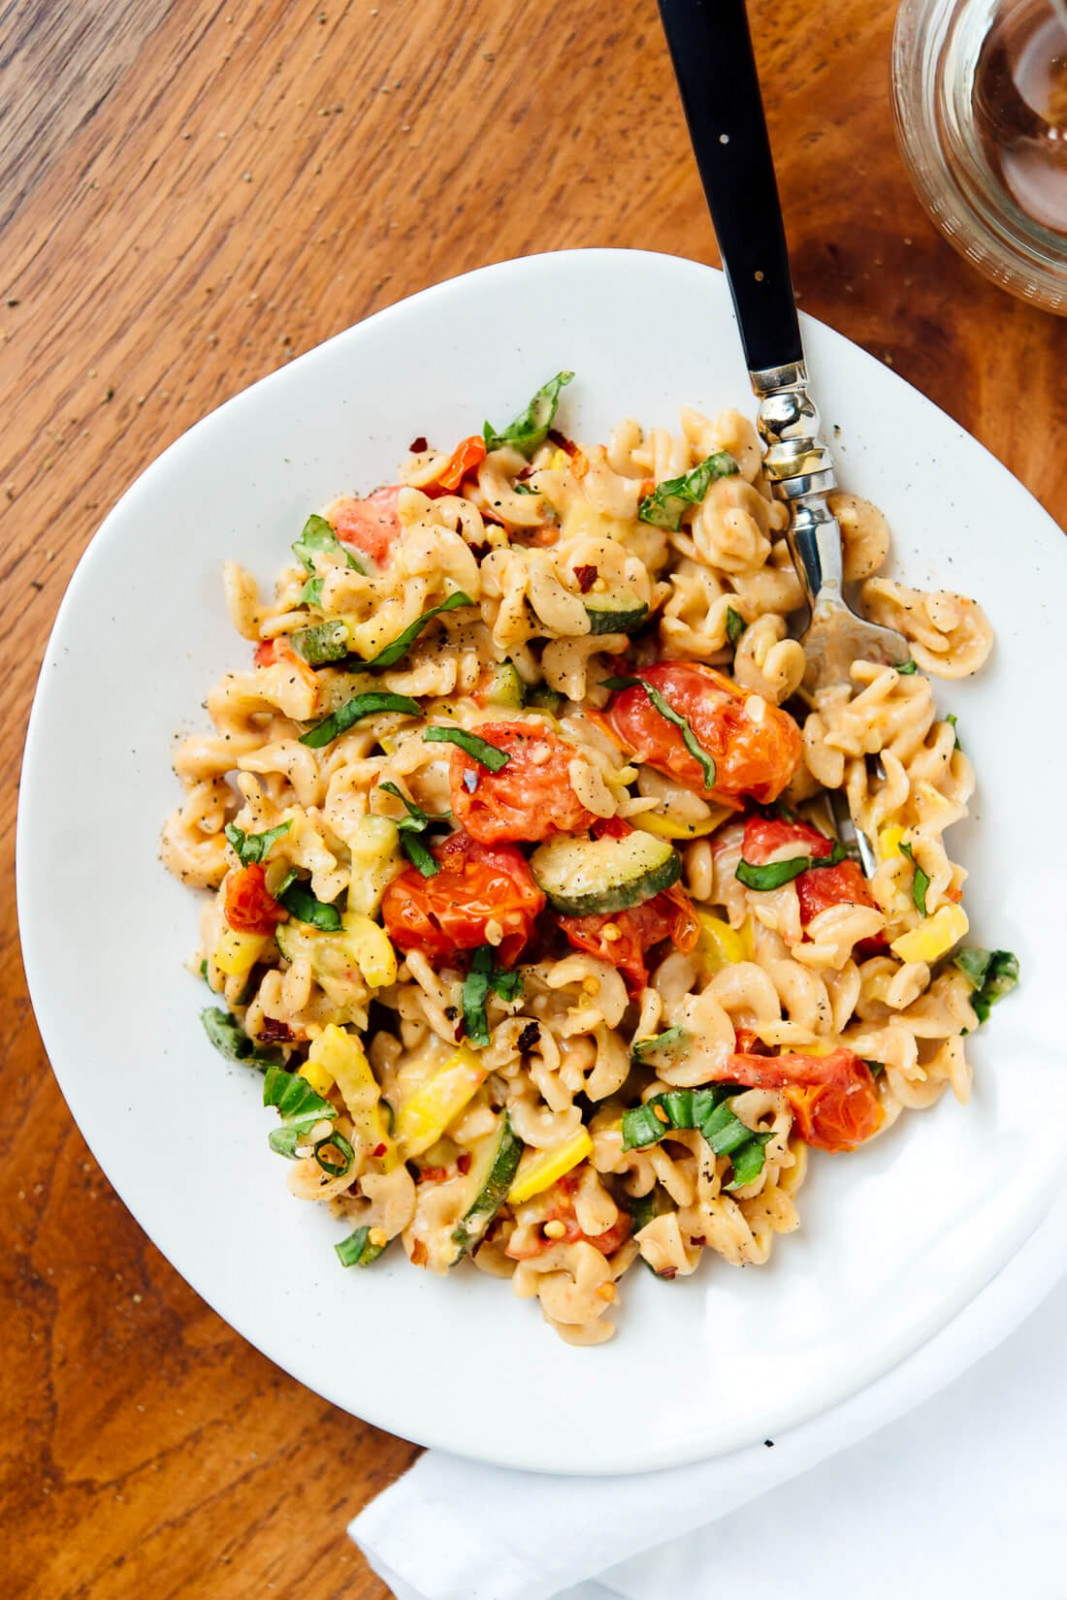 13 Simple Vegetarian Dinner Recipes - Cookie and Kate - summer recipes dinner